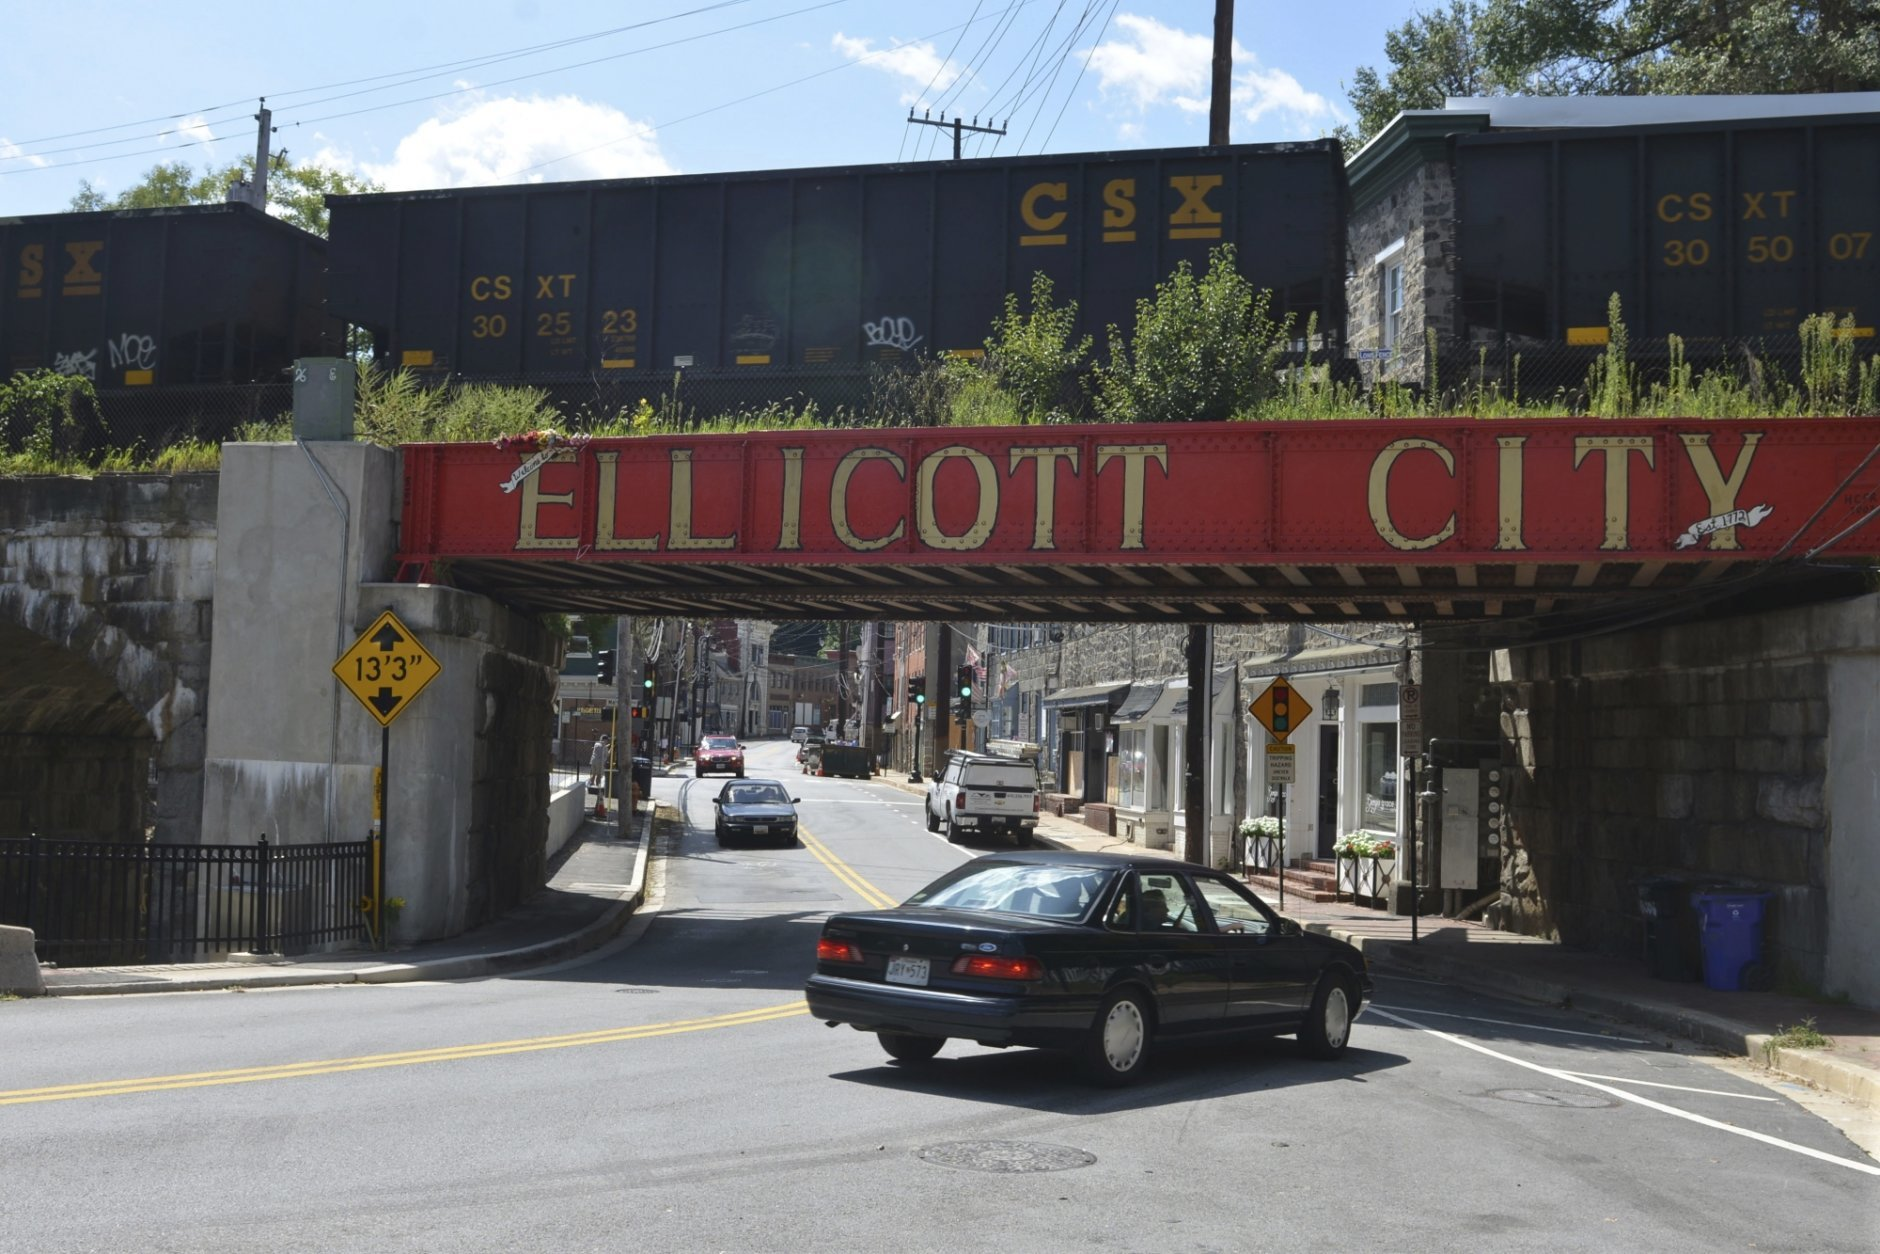 Howard County's Council will vote on a plan that would include tearing down 10 buildings on Main Street to try to minimize future flood damage. (AP Photo/David McFadden, file)